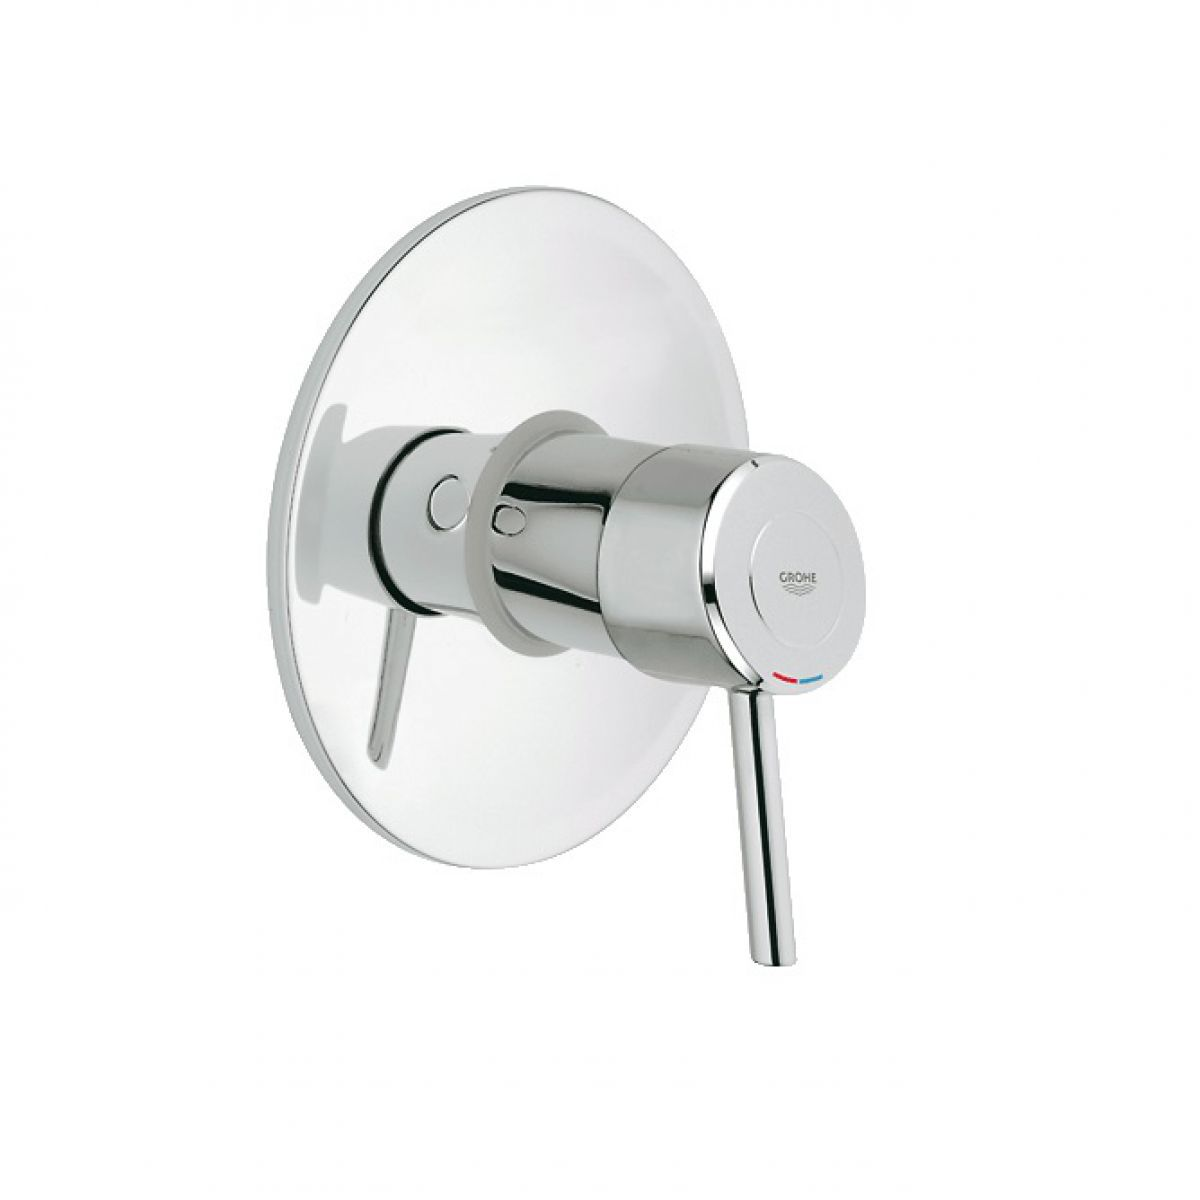 Grohe Concetto Single Lever Shower Mixer | WINDERMERE | Pinterest ...